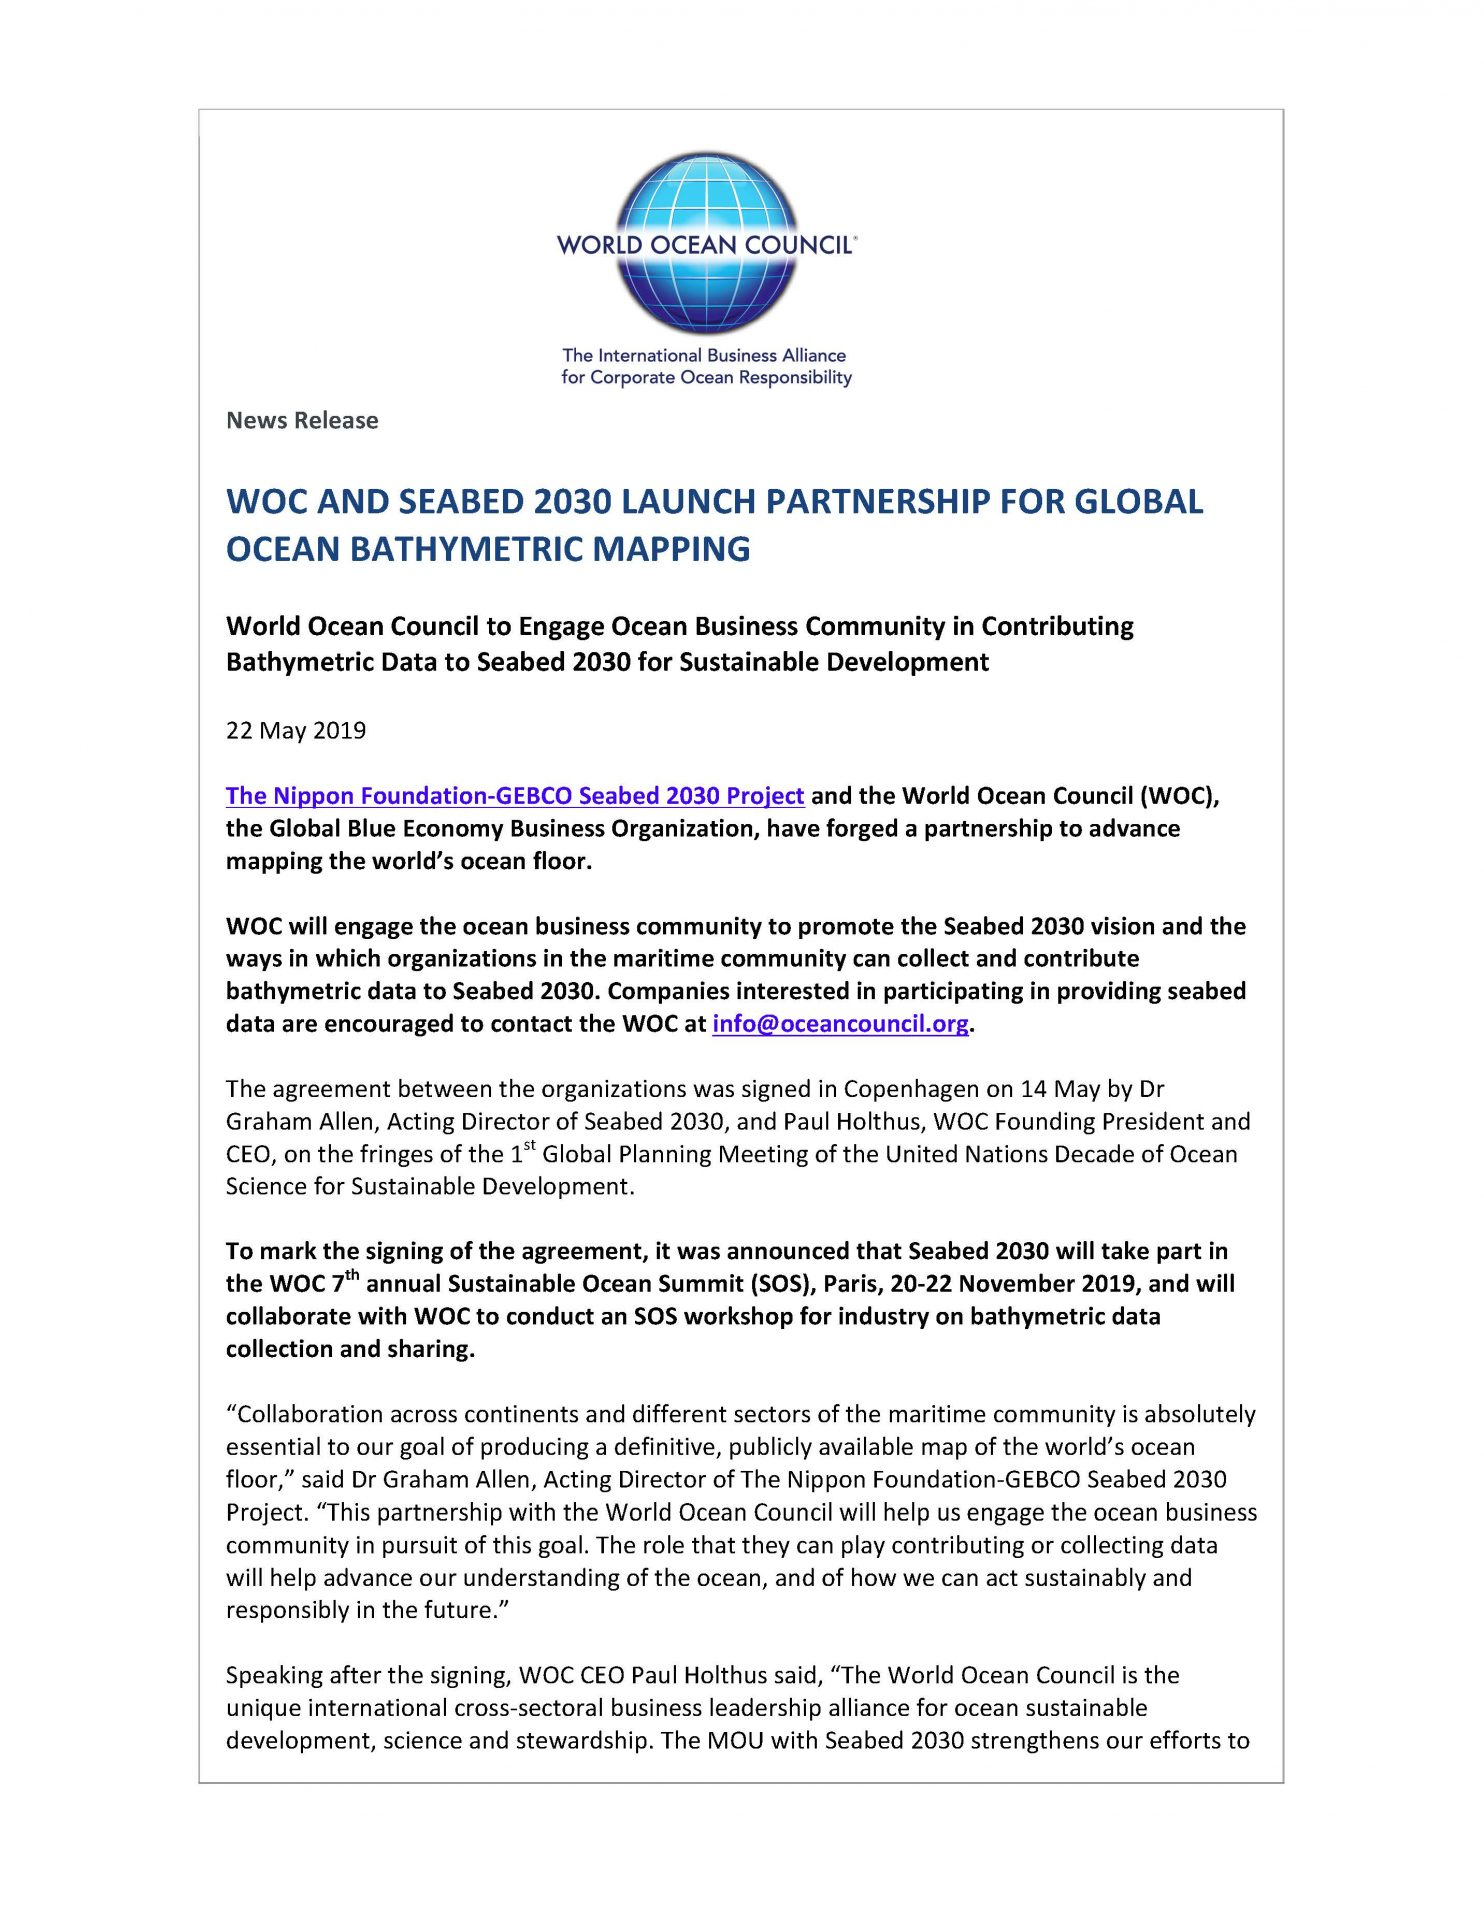 WOC and Seabed 2030 Launch Partnership for Global Ocean Bathymetric Mapping - 22 May 2019